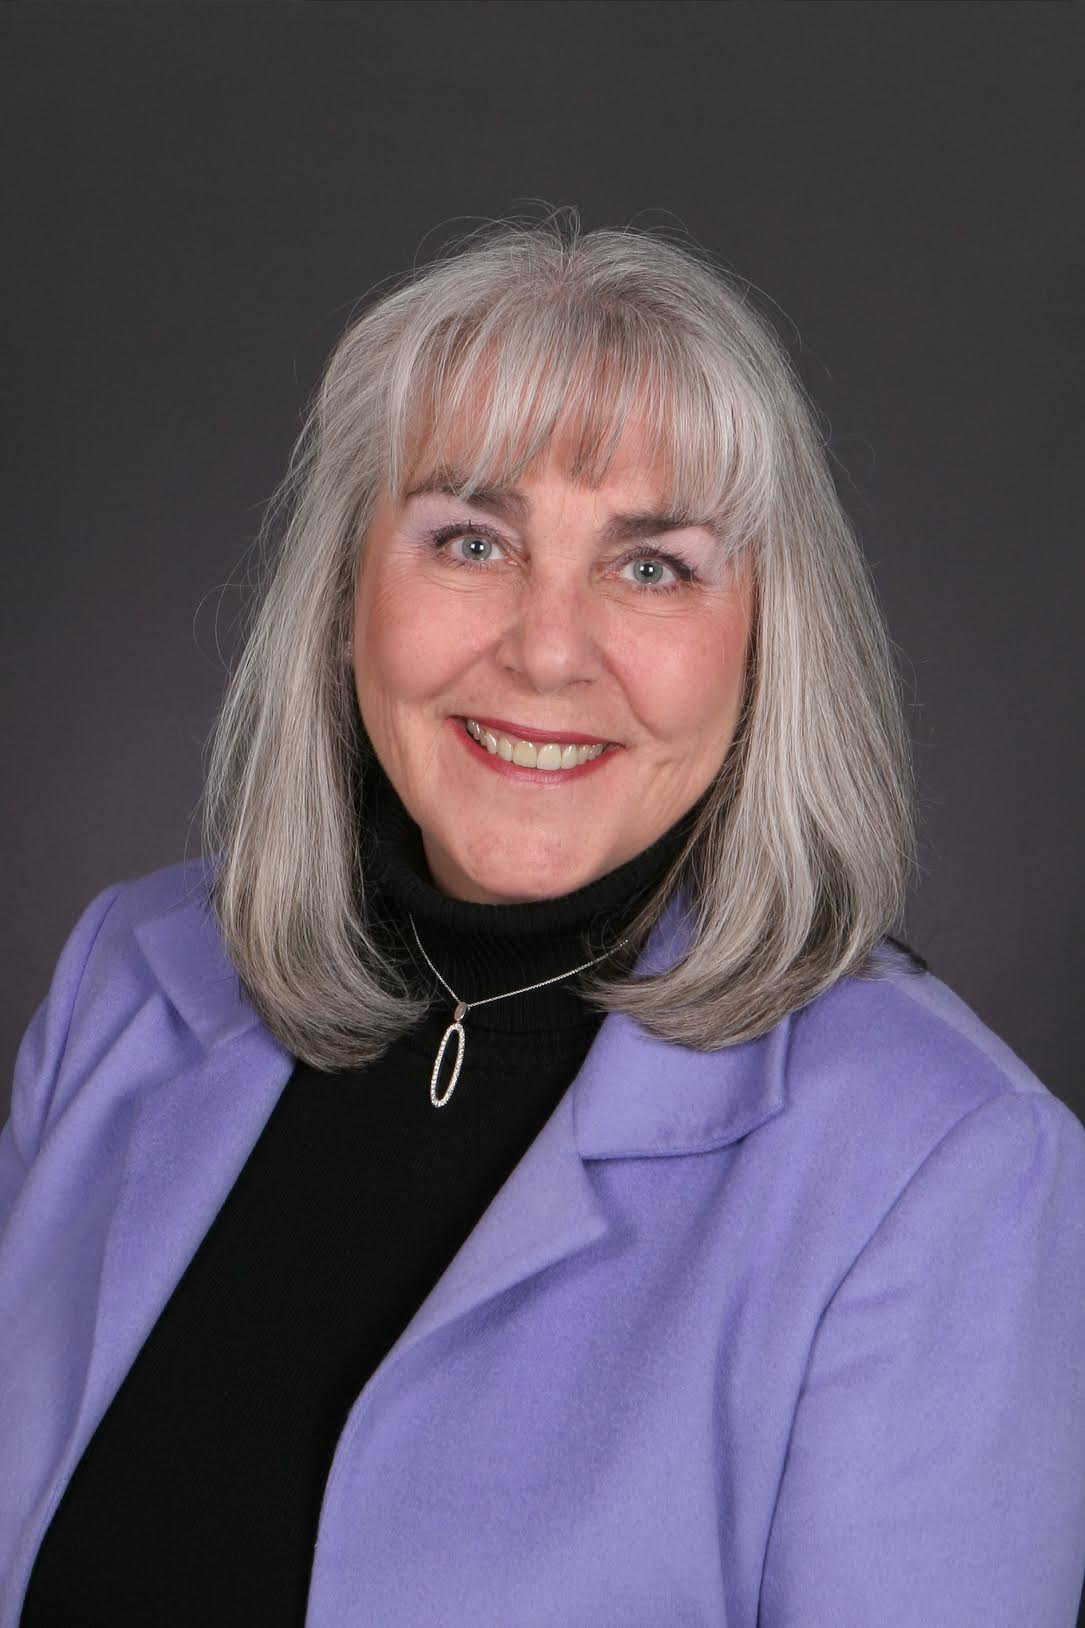 Joan Ellis Beglinger has been a professional nurse since 1975. She spent 10 years in clinical practice in critical care. Currently retired, Joan practiced for 28 years as a tertiary medical center Vice President/ Chief Nursing Officer. She served as the 2016-2017 President of the Wisconsin Organization of Nurse Executives and is a Fellow of the American College of Health Care Executives of the American Academy of Nursing.    Email:  jebdesigningtomorrow@charter.net